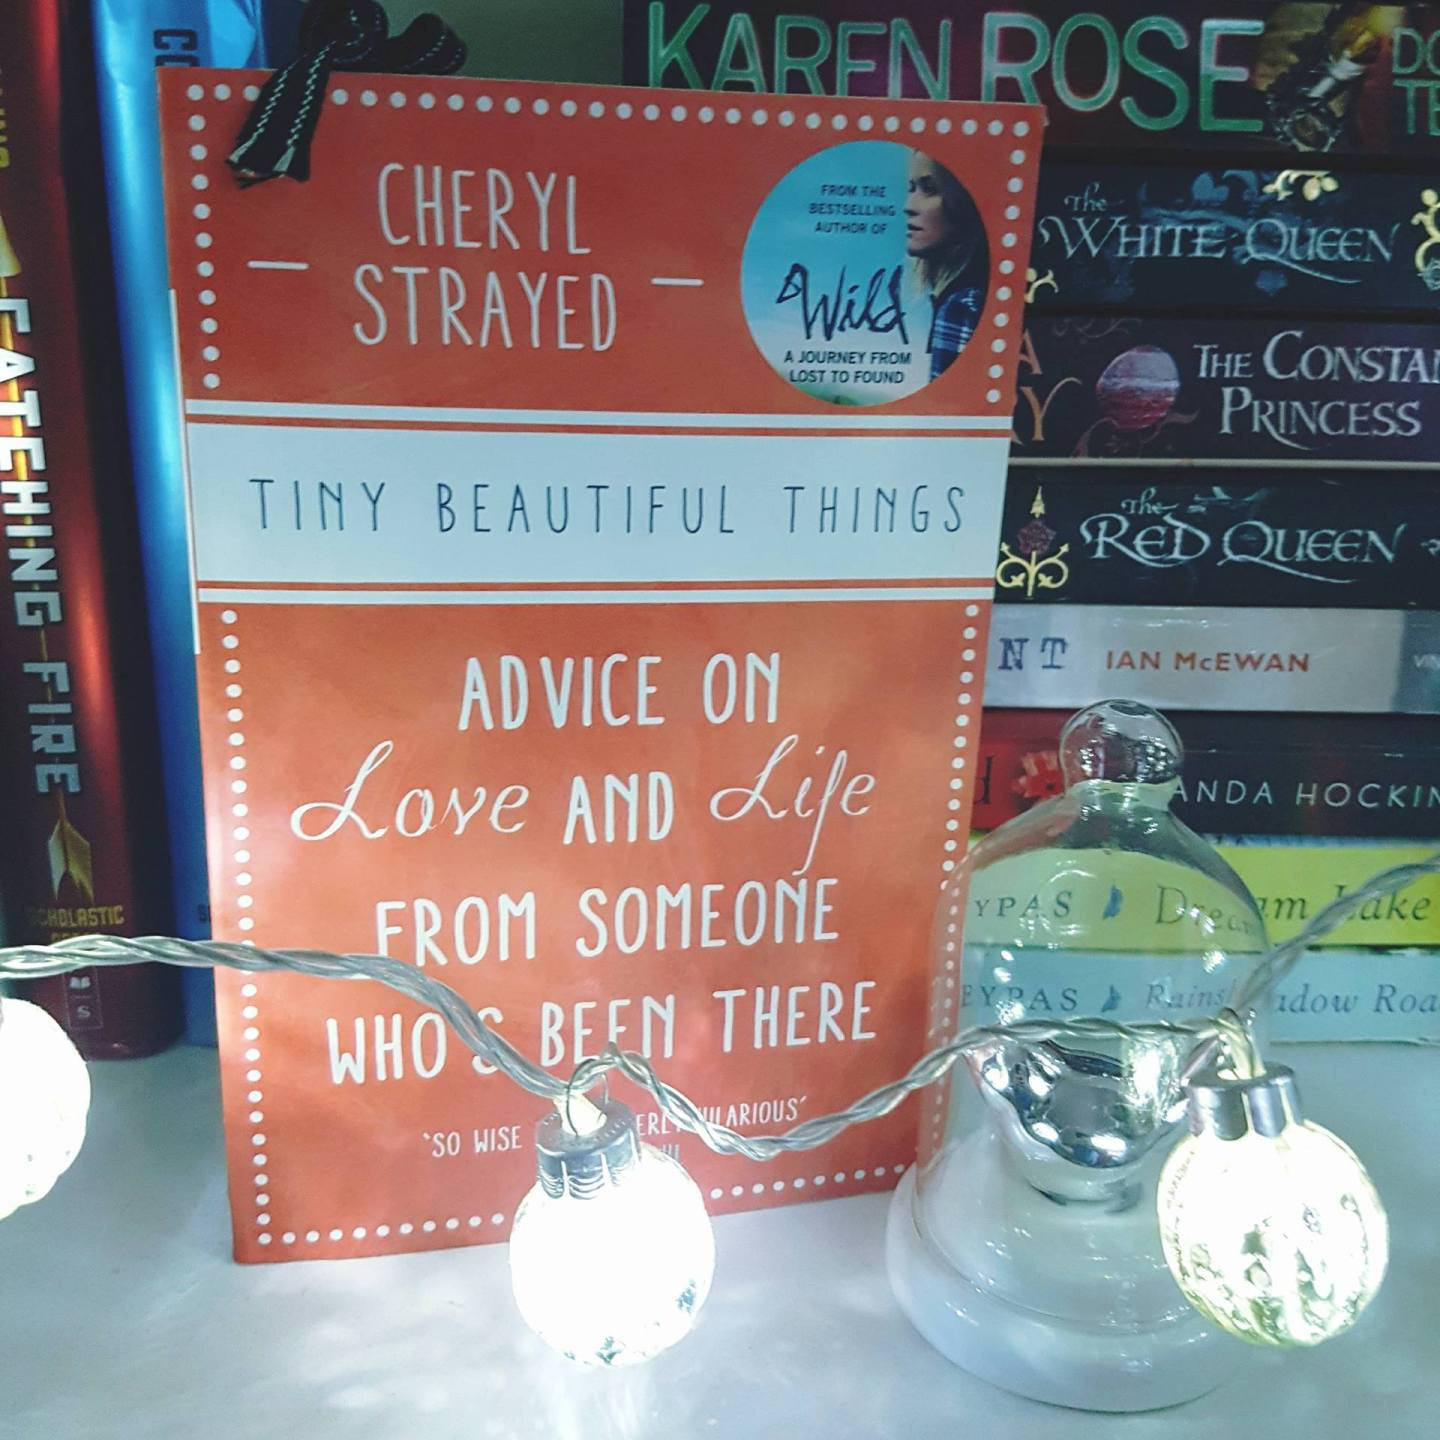 Book review: 'Tiny Beautiful Things'